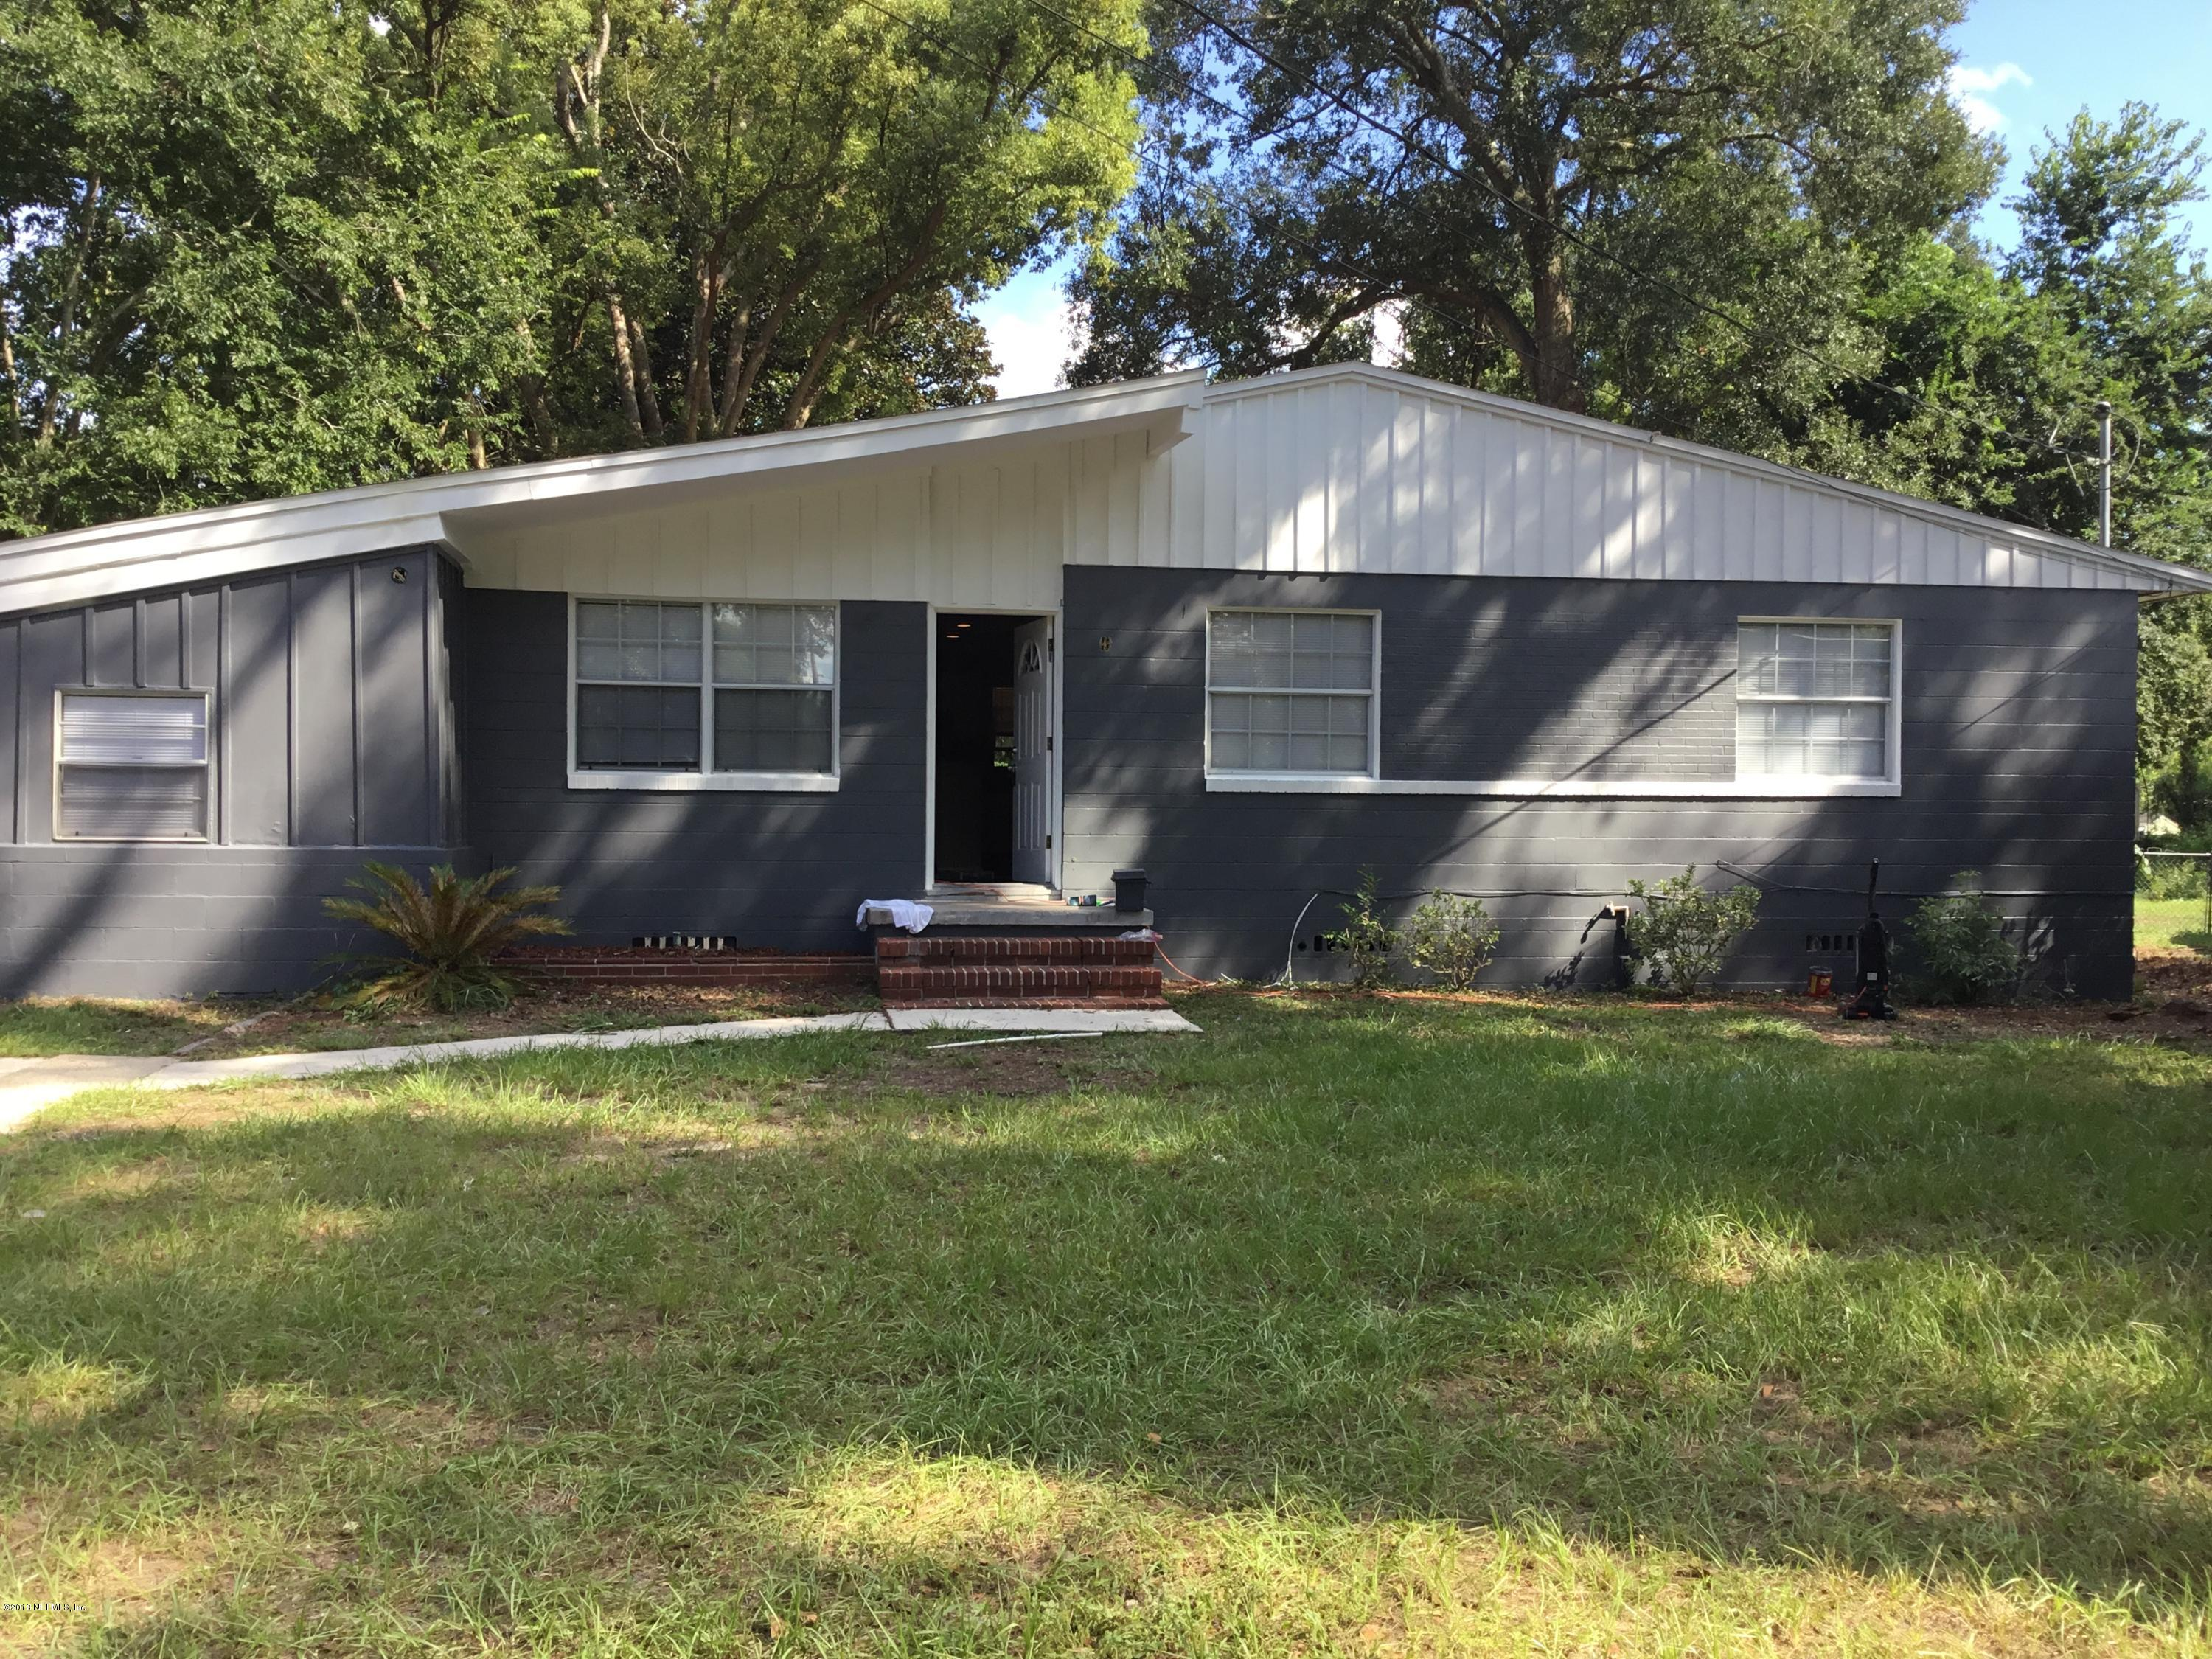 2327 CALADIUM, JACKSONVILLE, FLORIDA 32211, 4 Bedrooms Bedrooms, ,1 BathroomBathrooms,Residential - single family,For sale,CALADIUM,965130